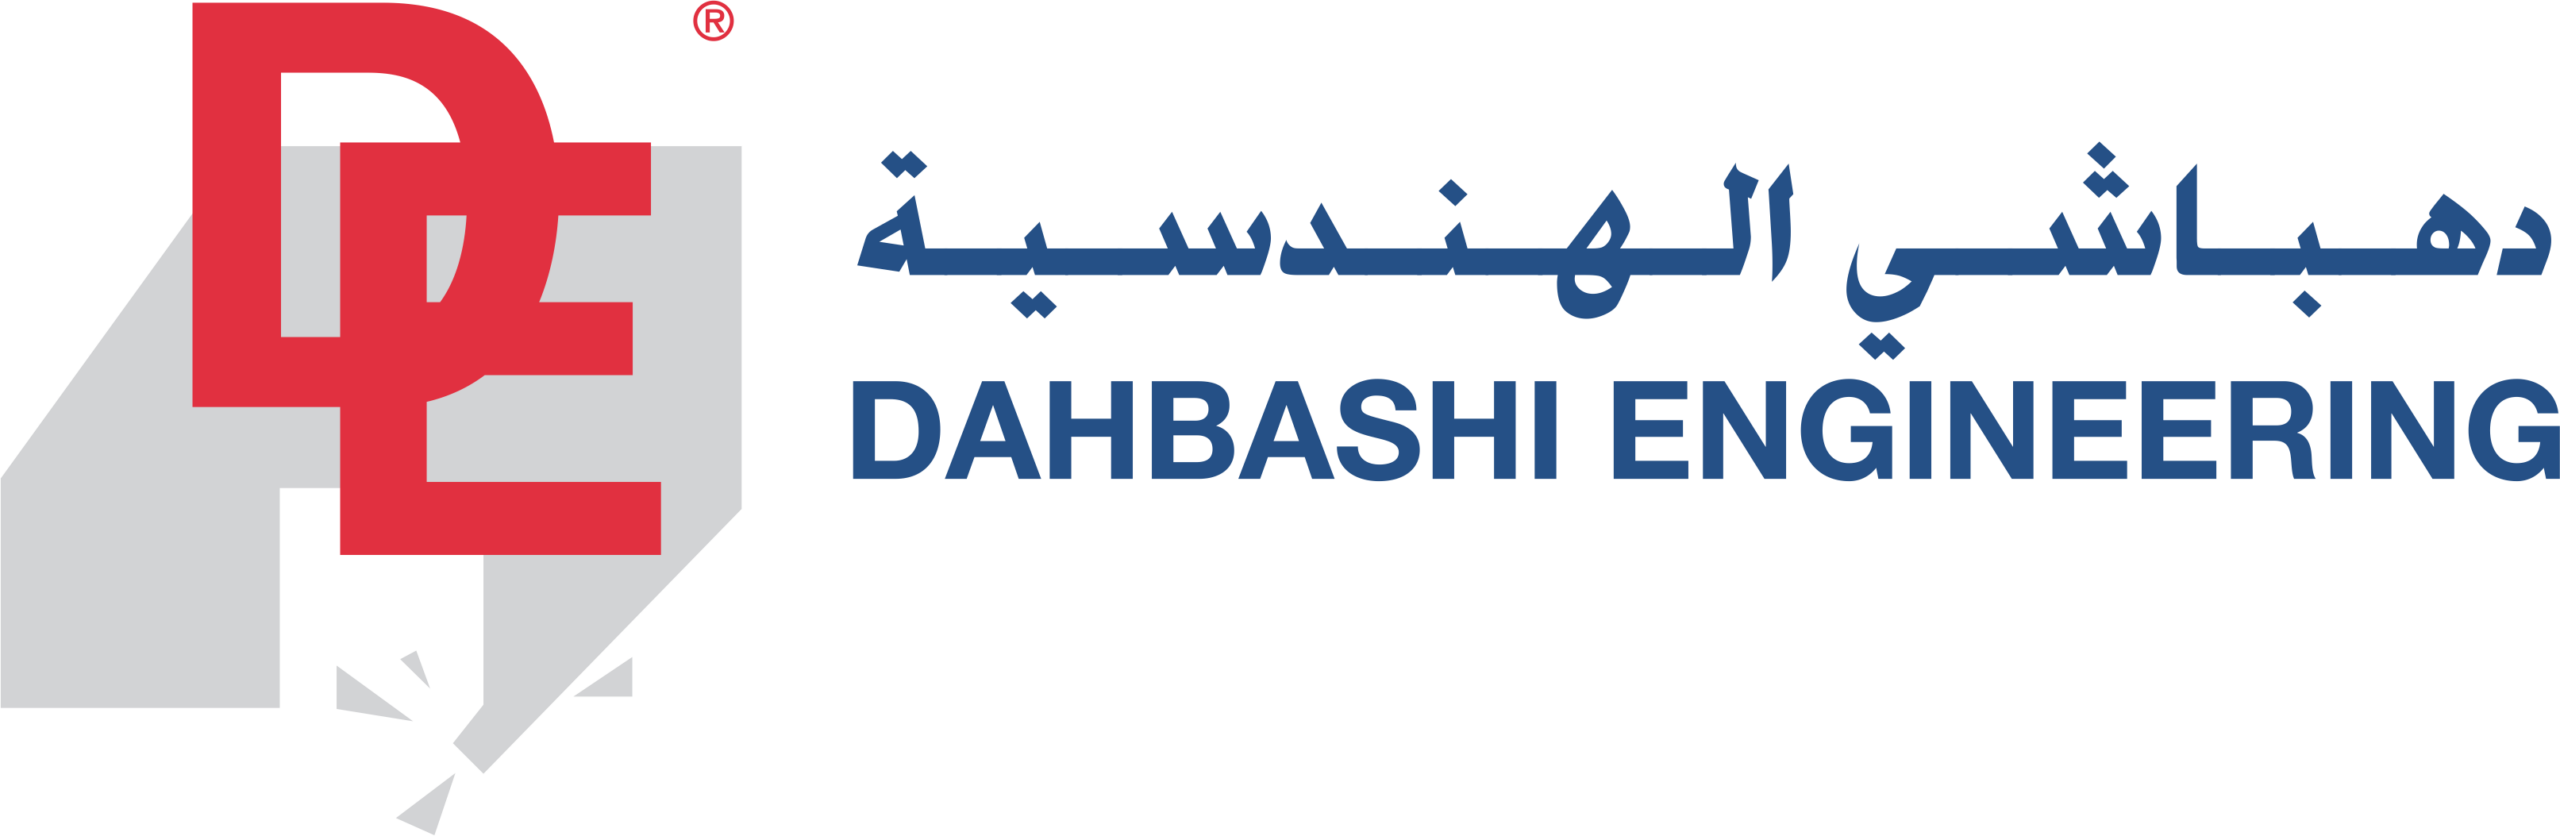 Dahbashi Engineering Logo